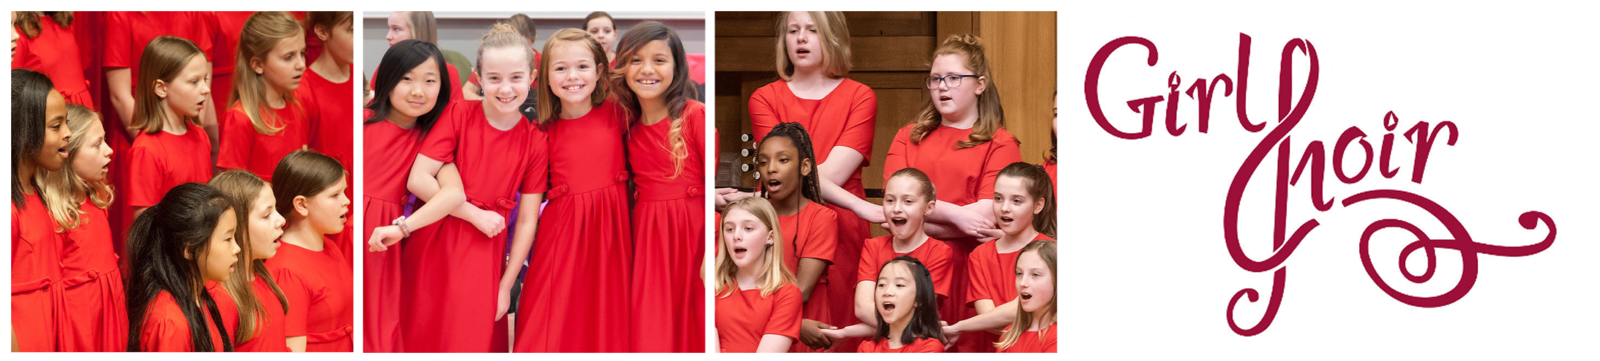 "Three photos: Allegretto students performing onstage, four singers smiling with their arms interlocked, Allegretto singing while holding hands. The Girl Choir logo follows, the ""C"" stylized to look like a treble clef."